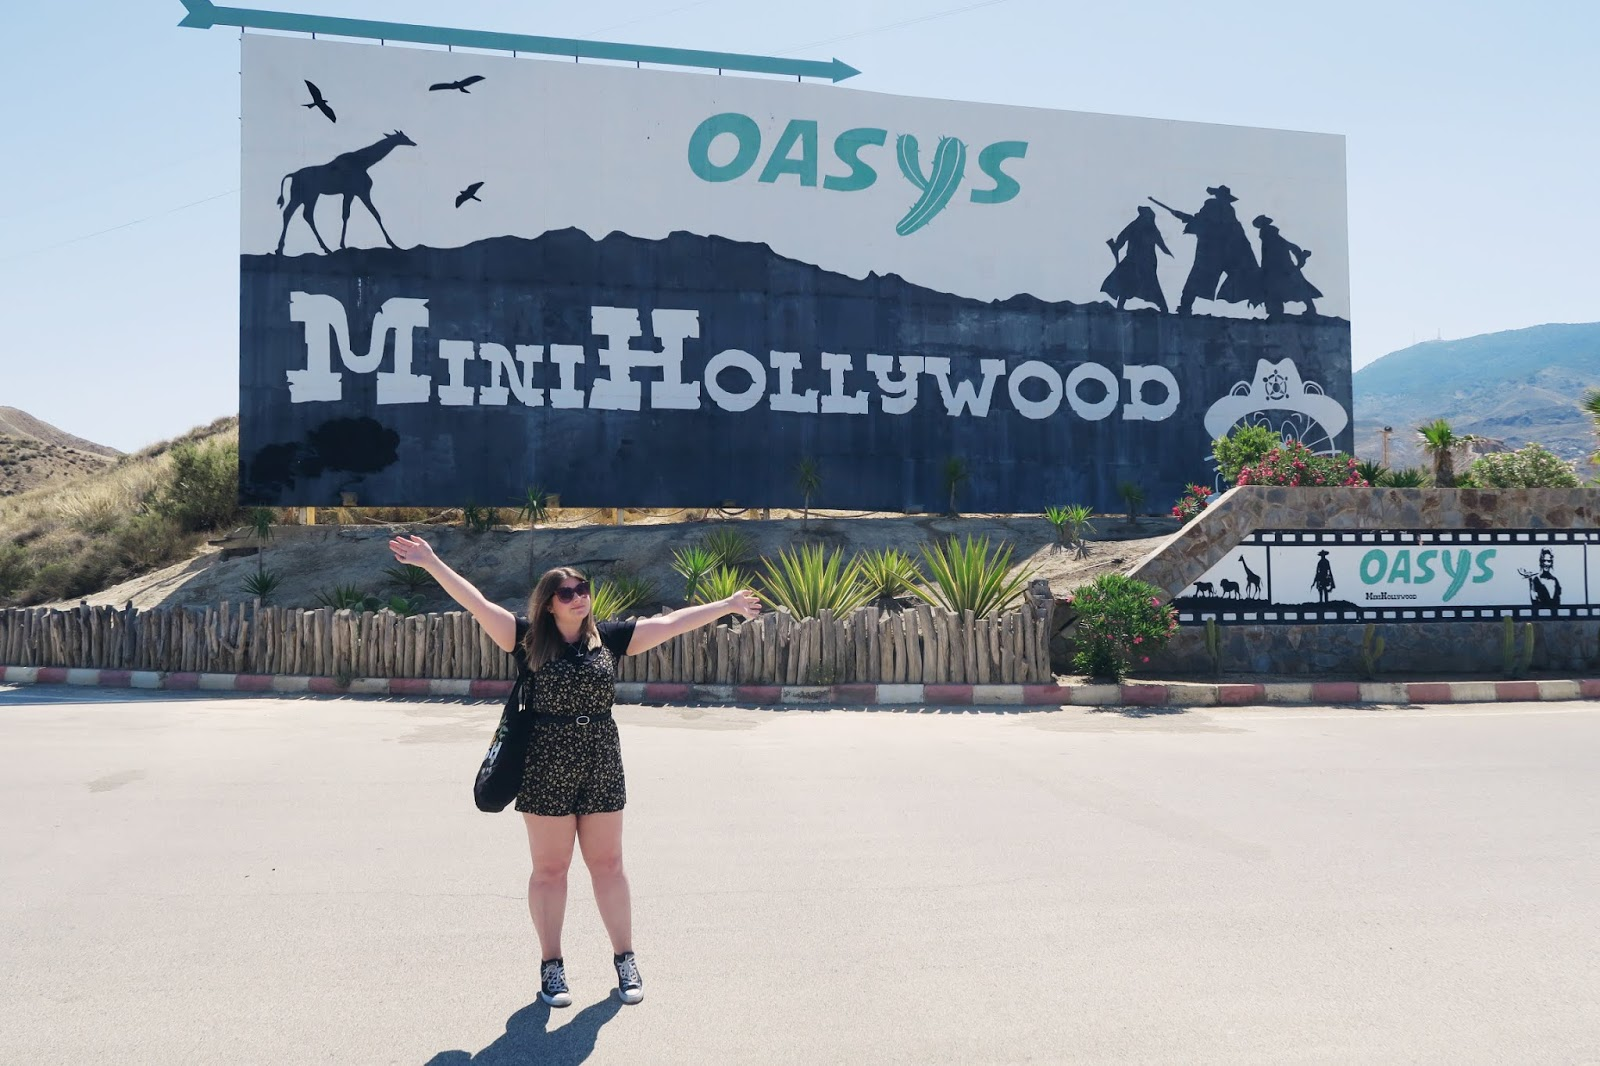 The entrance sign to Mini Hollywood